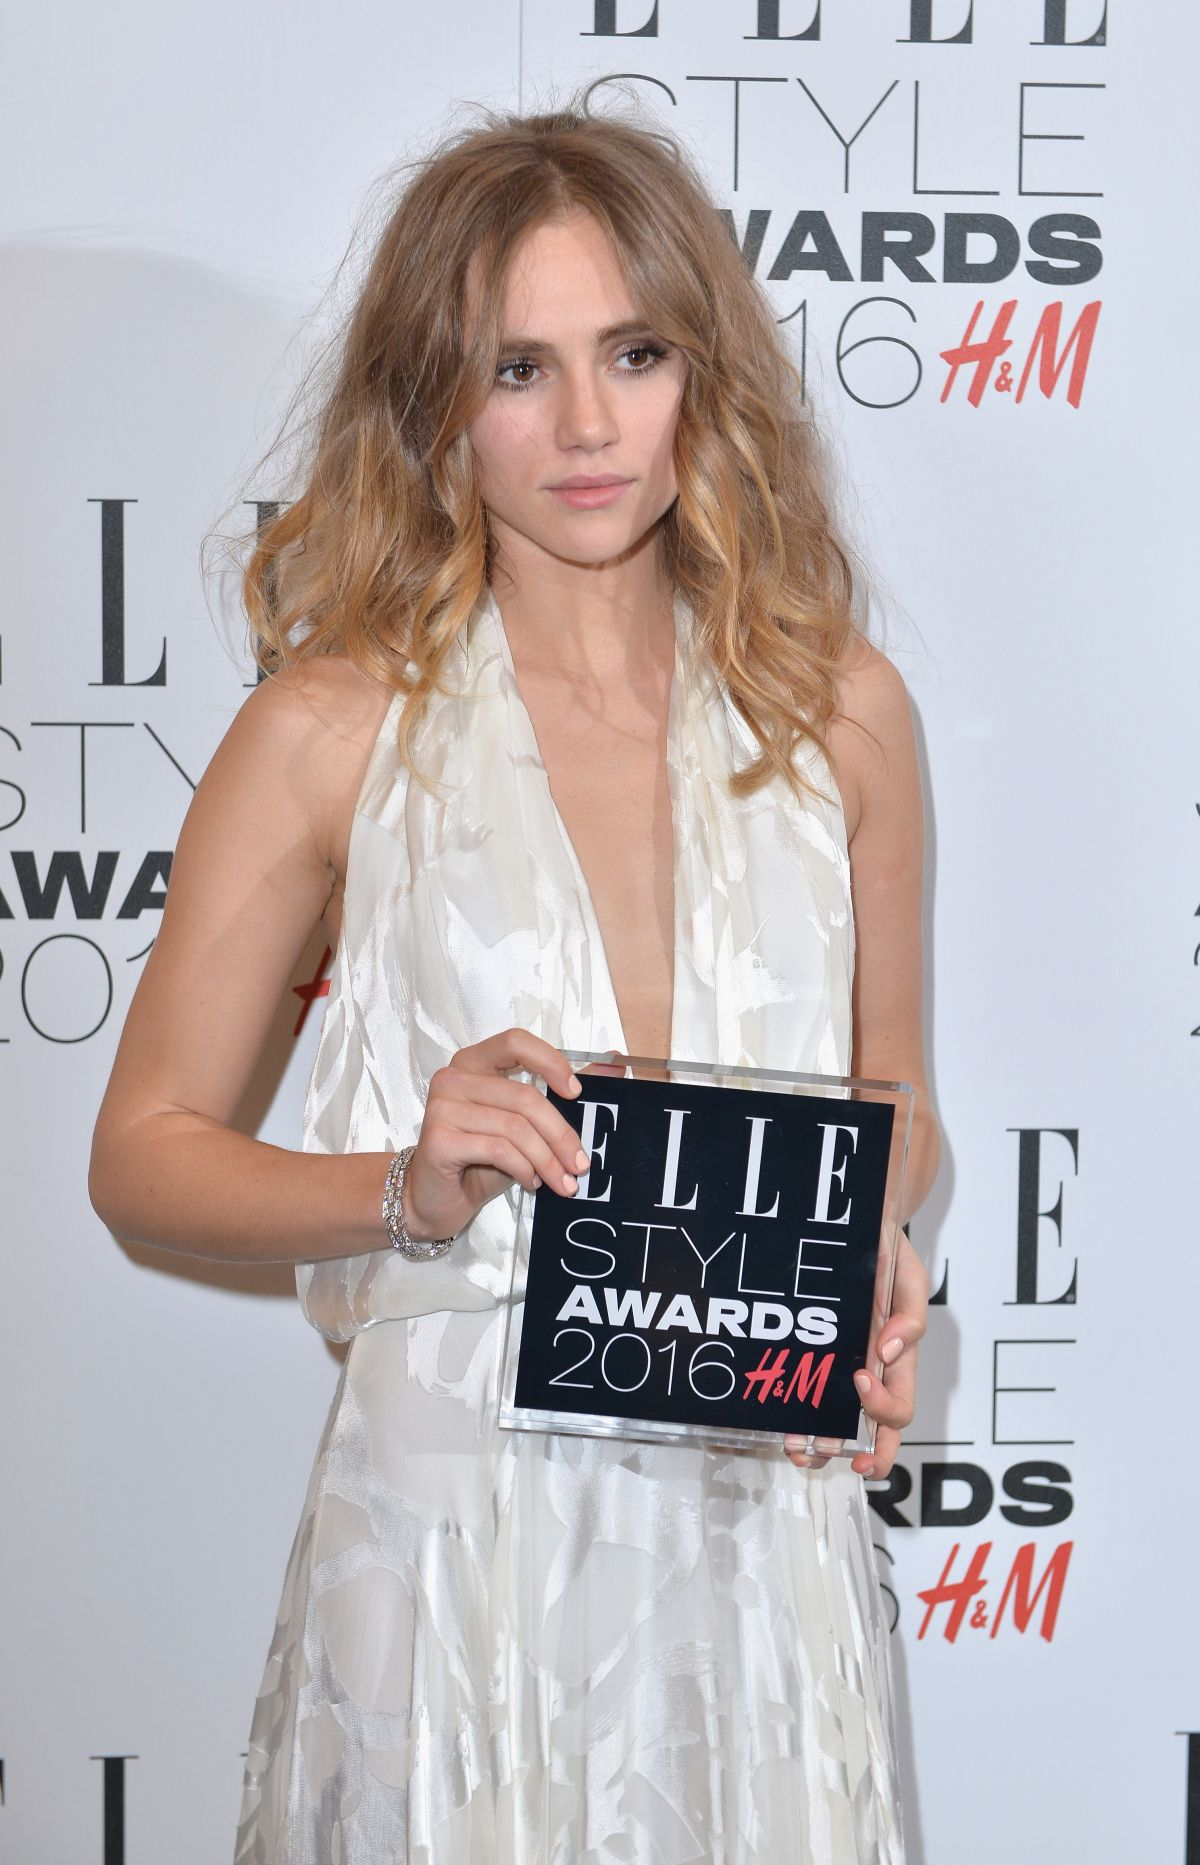 SUKI WATERHOUSE at Elle Style Awards in London 02/23/2016